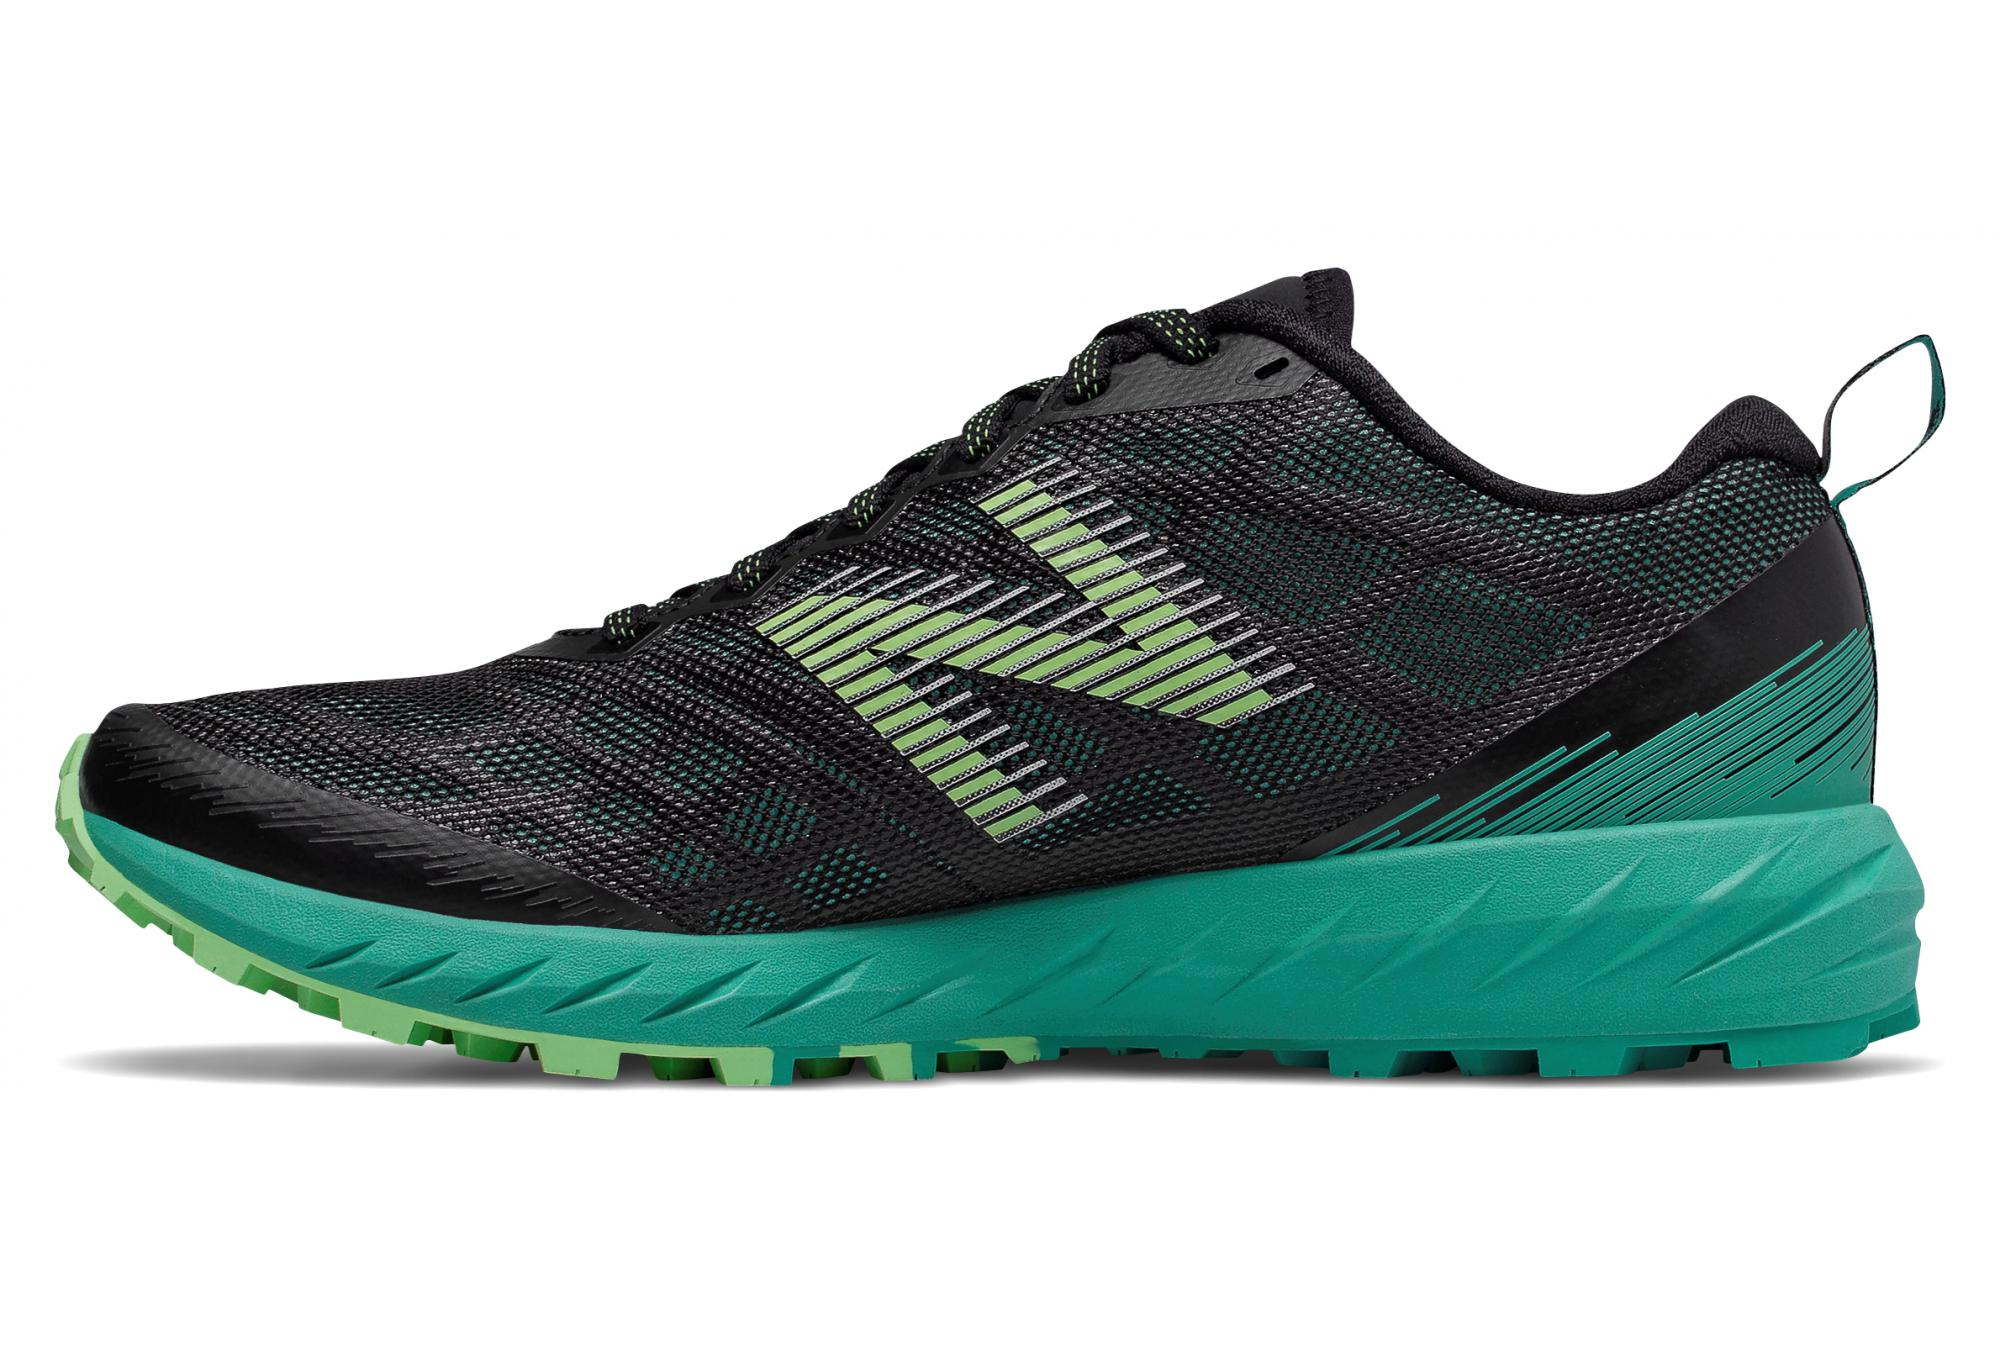 New Balance De Chaussures Summit Trail Vert Unknown Noir znE6v